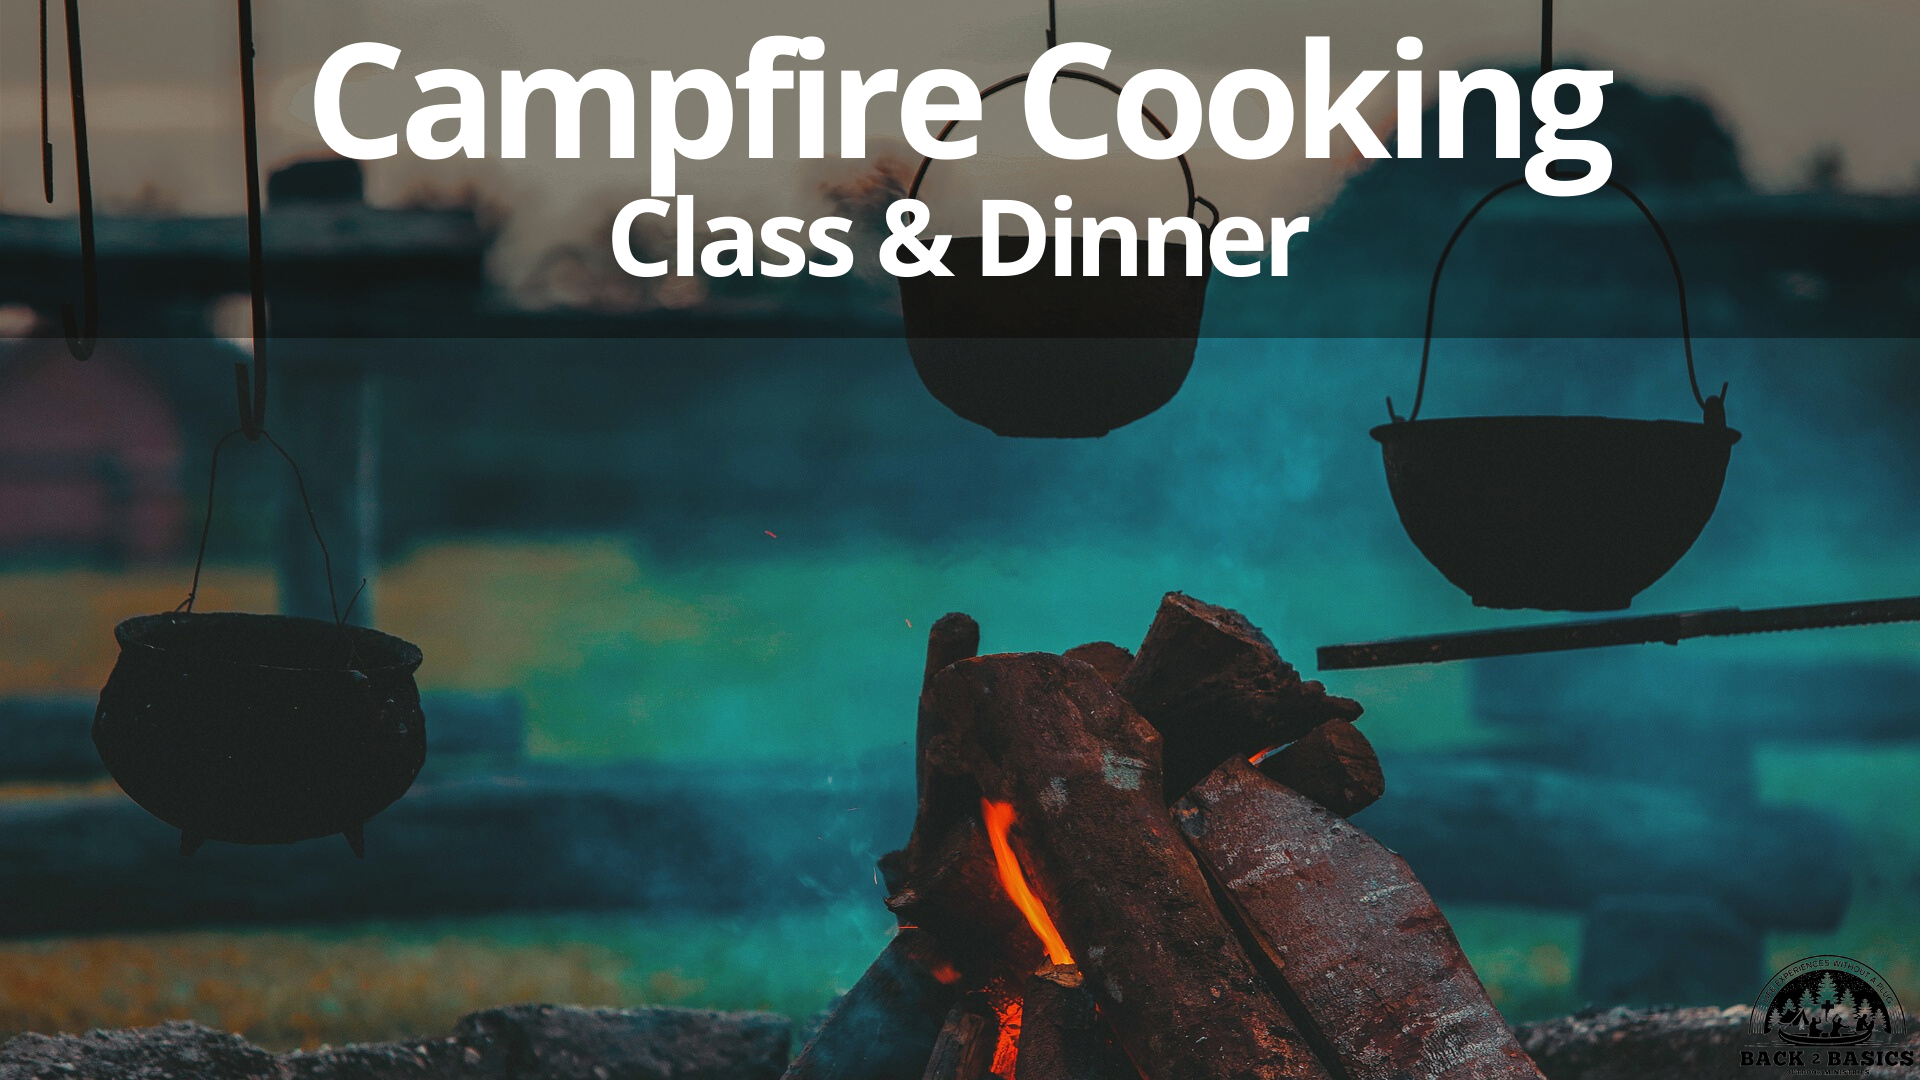 Campfire Cooking Class, back2basics outdoor ministries